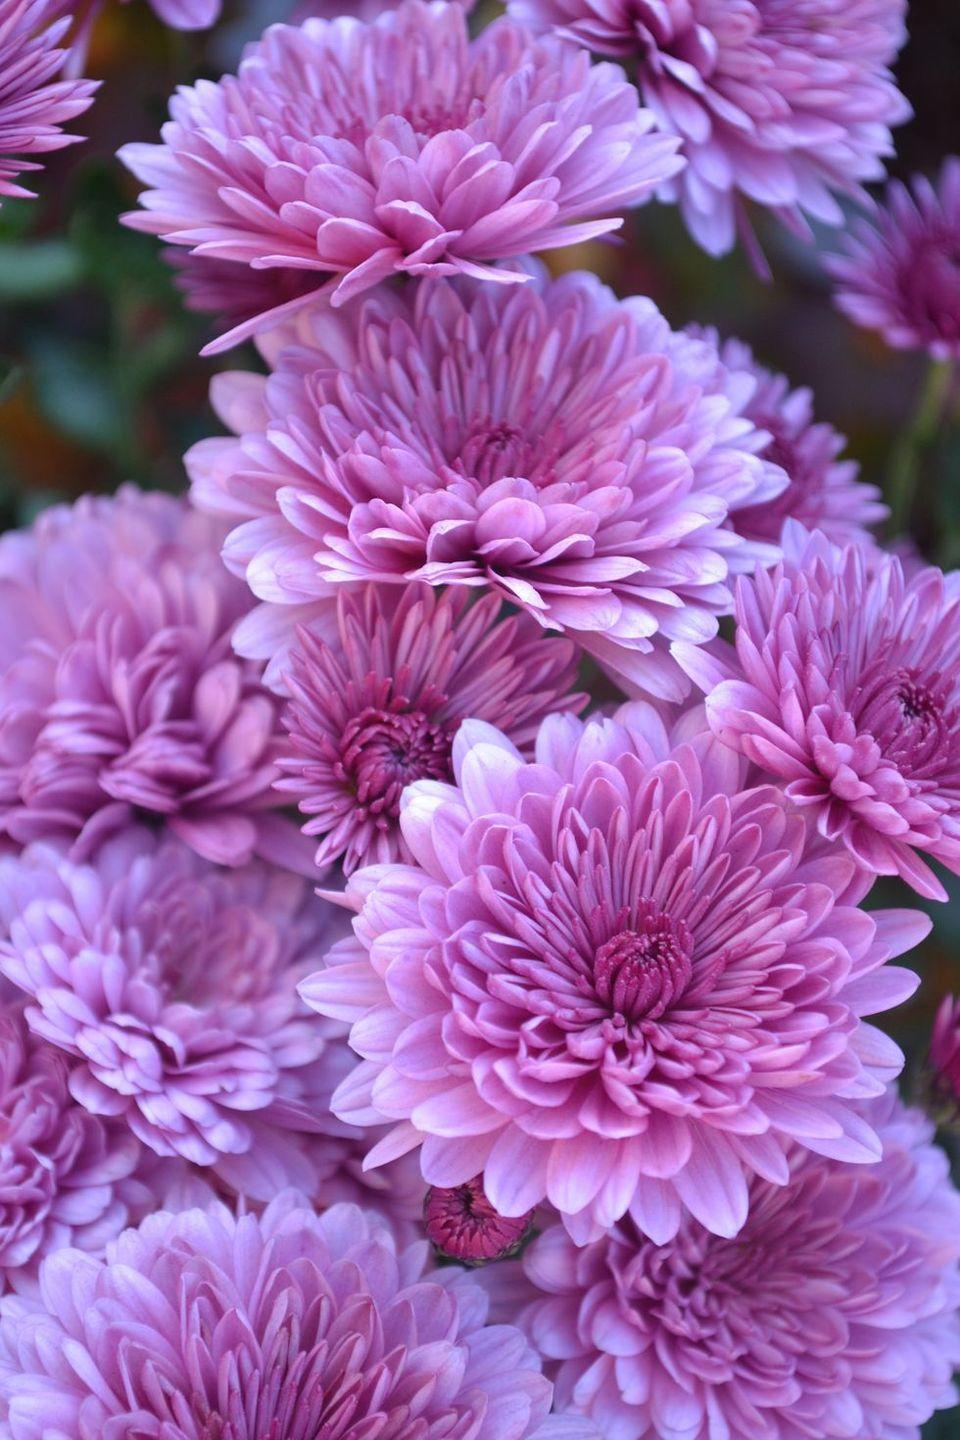 """<p>It may be tricky to spell, but the <a href=""""https://www.goodhousekeeping.com/home/gardening/a20705668/growing-mums/"""" rel=""""nofollow noopener"""" target=""""_blank"""" data-ylk=""""slk:chrysanthemum"""" class=""""link rapid-noclick-resp"""">chrysanthemum</a> has a simple message: honesty. They also look lovely as part of a fall bouquet and because they can withstand cool temperatures, often appear in autumn landscaping. </p>"""